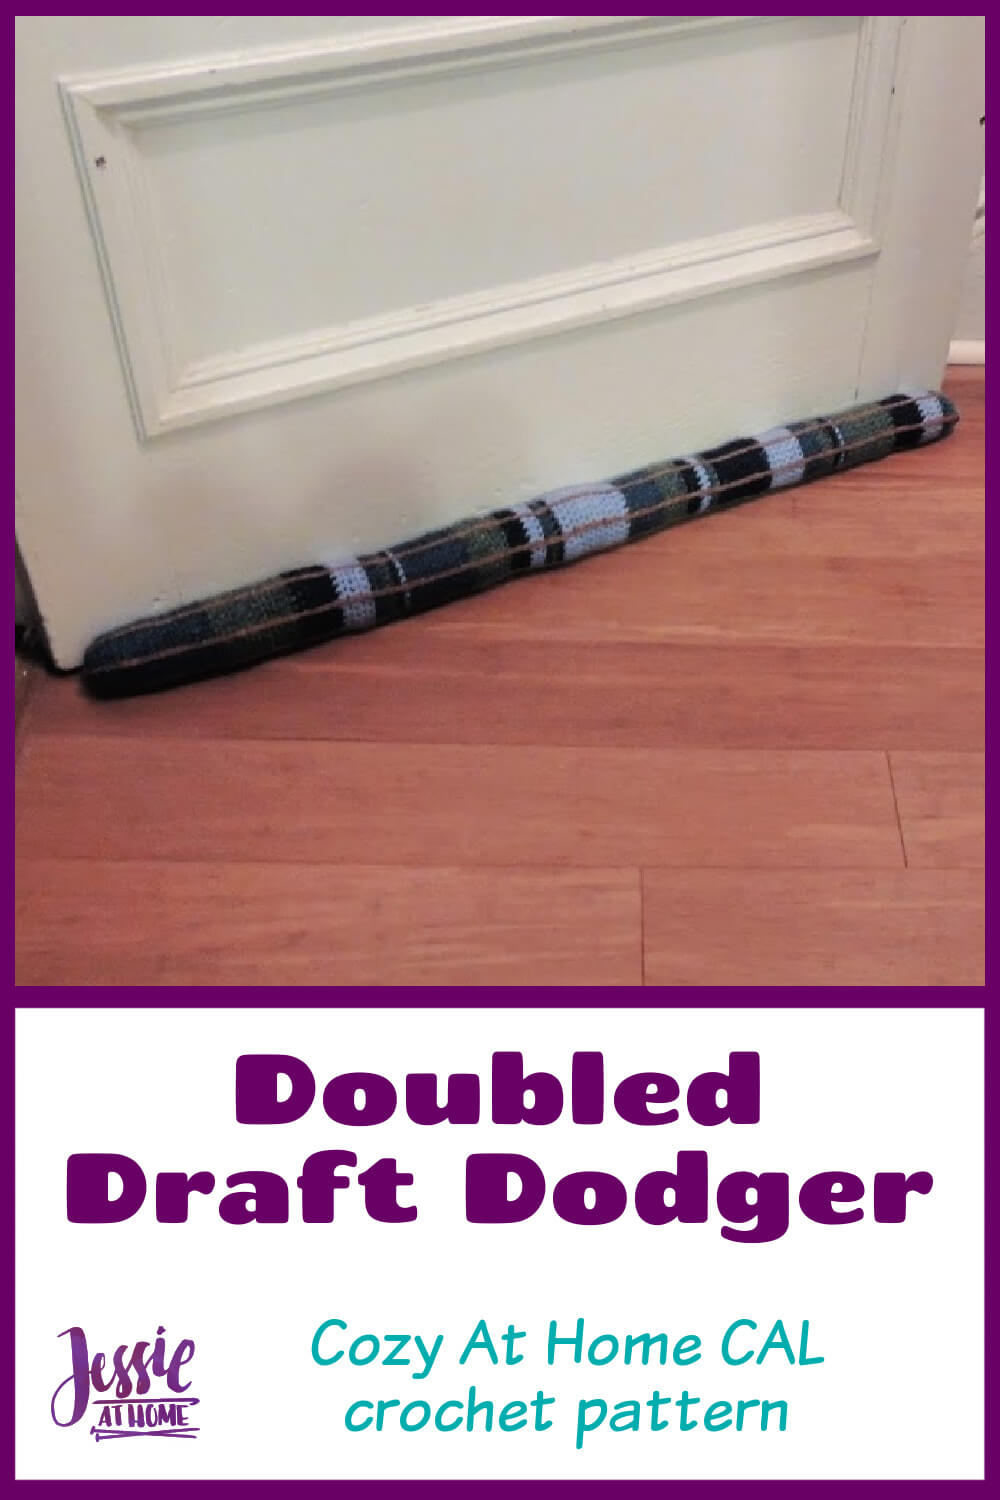 Doubled Draft Dodger - Stay Warm and Cozy At Home